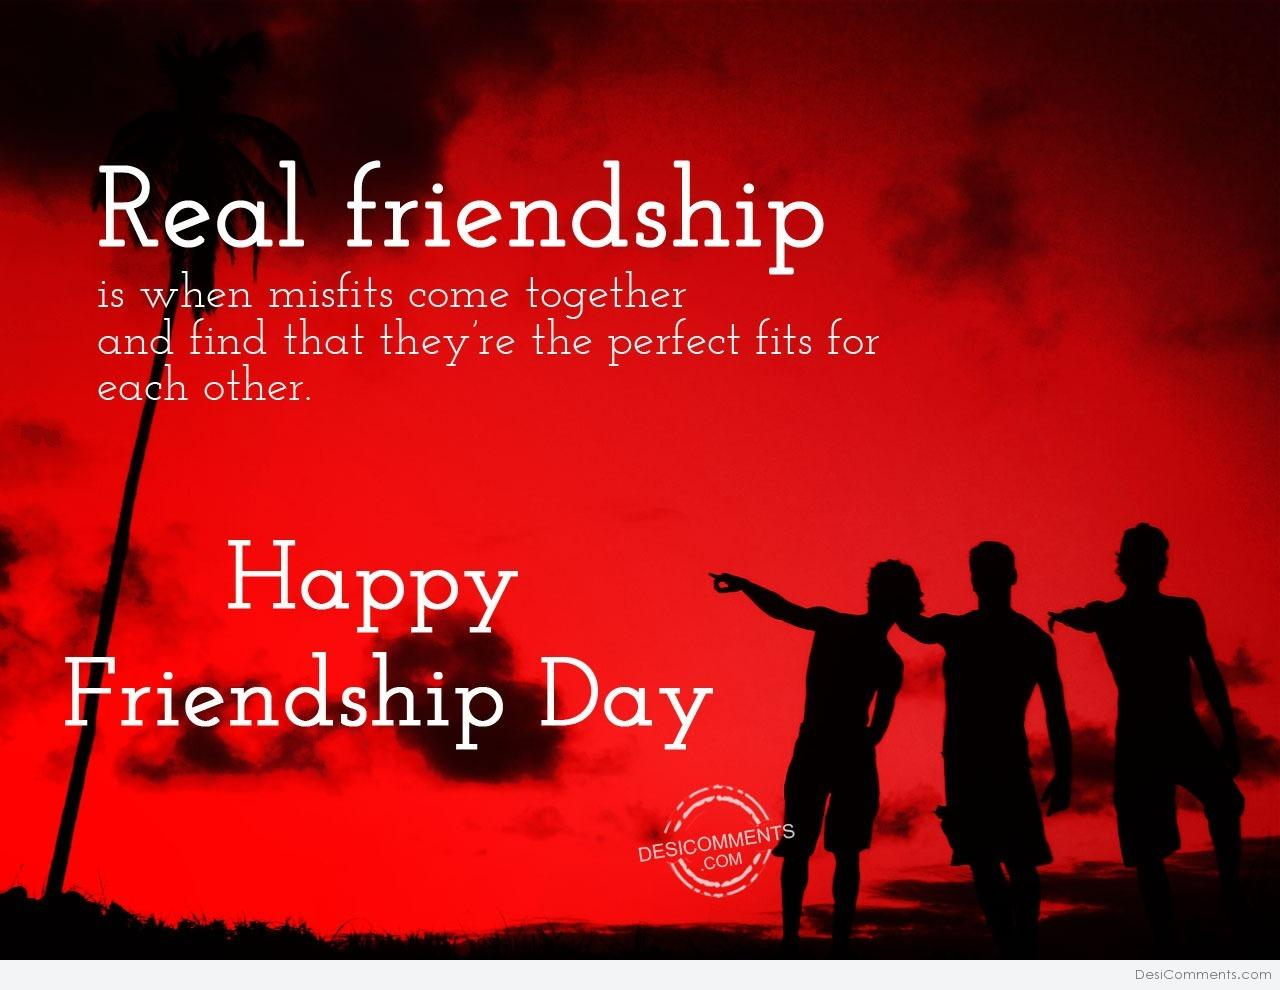 Friends are perfect happy frienship day for Perfect comment for a picture